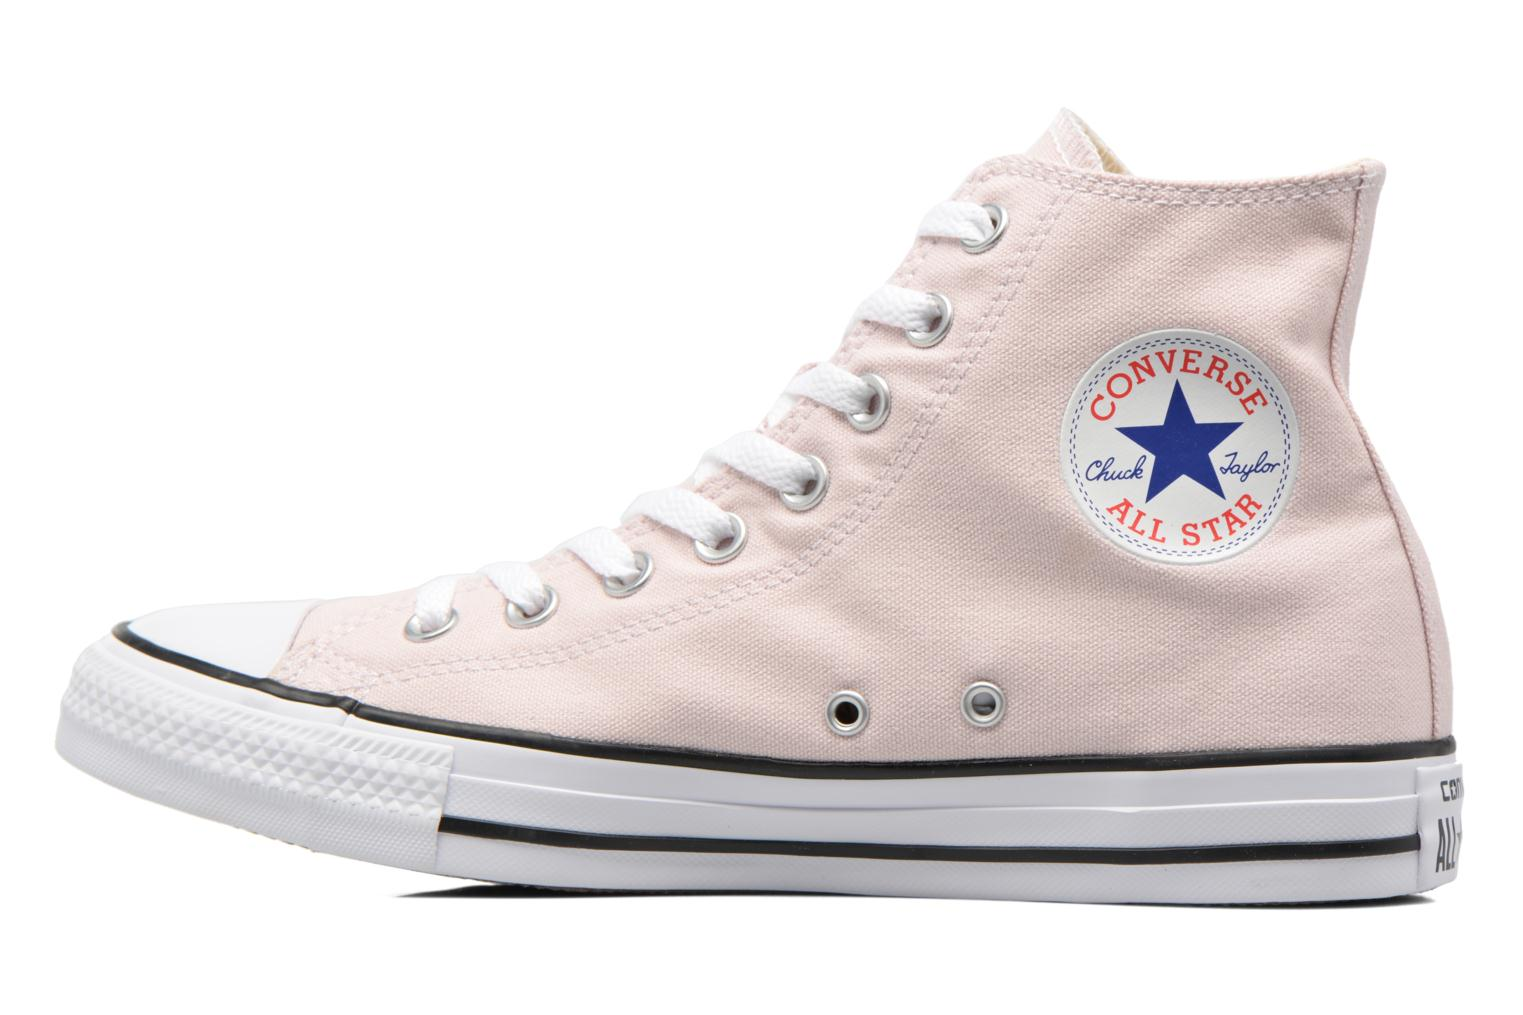 Converse Chuck Taylor All Star Hi W 220 Parere